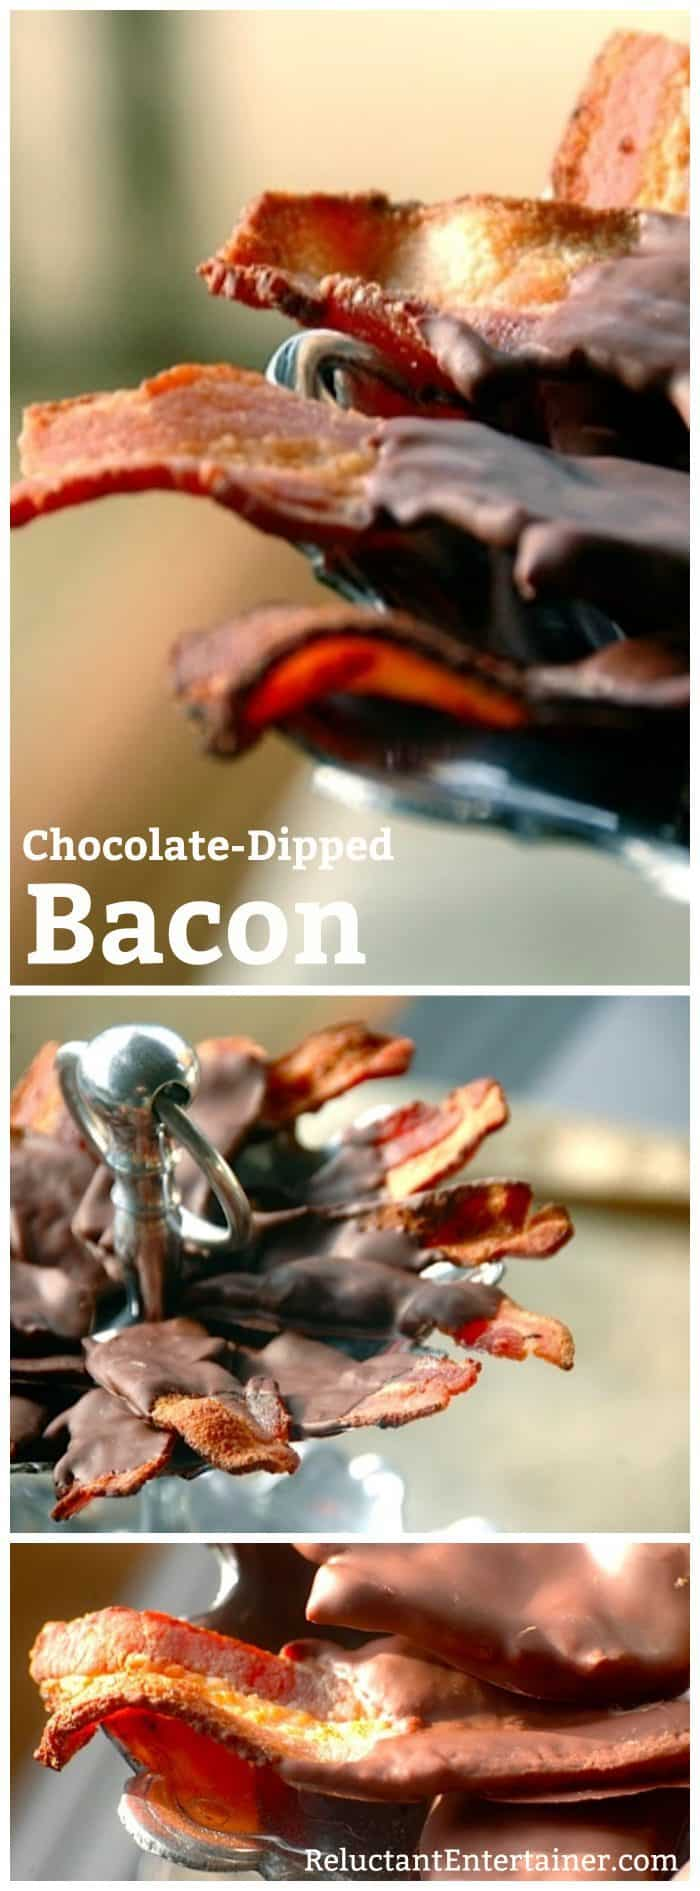 Chocolate-Dipped Bacon Recipe